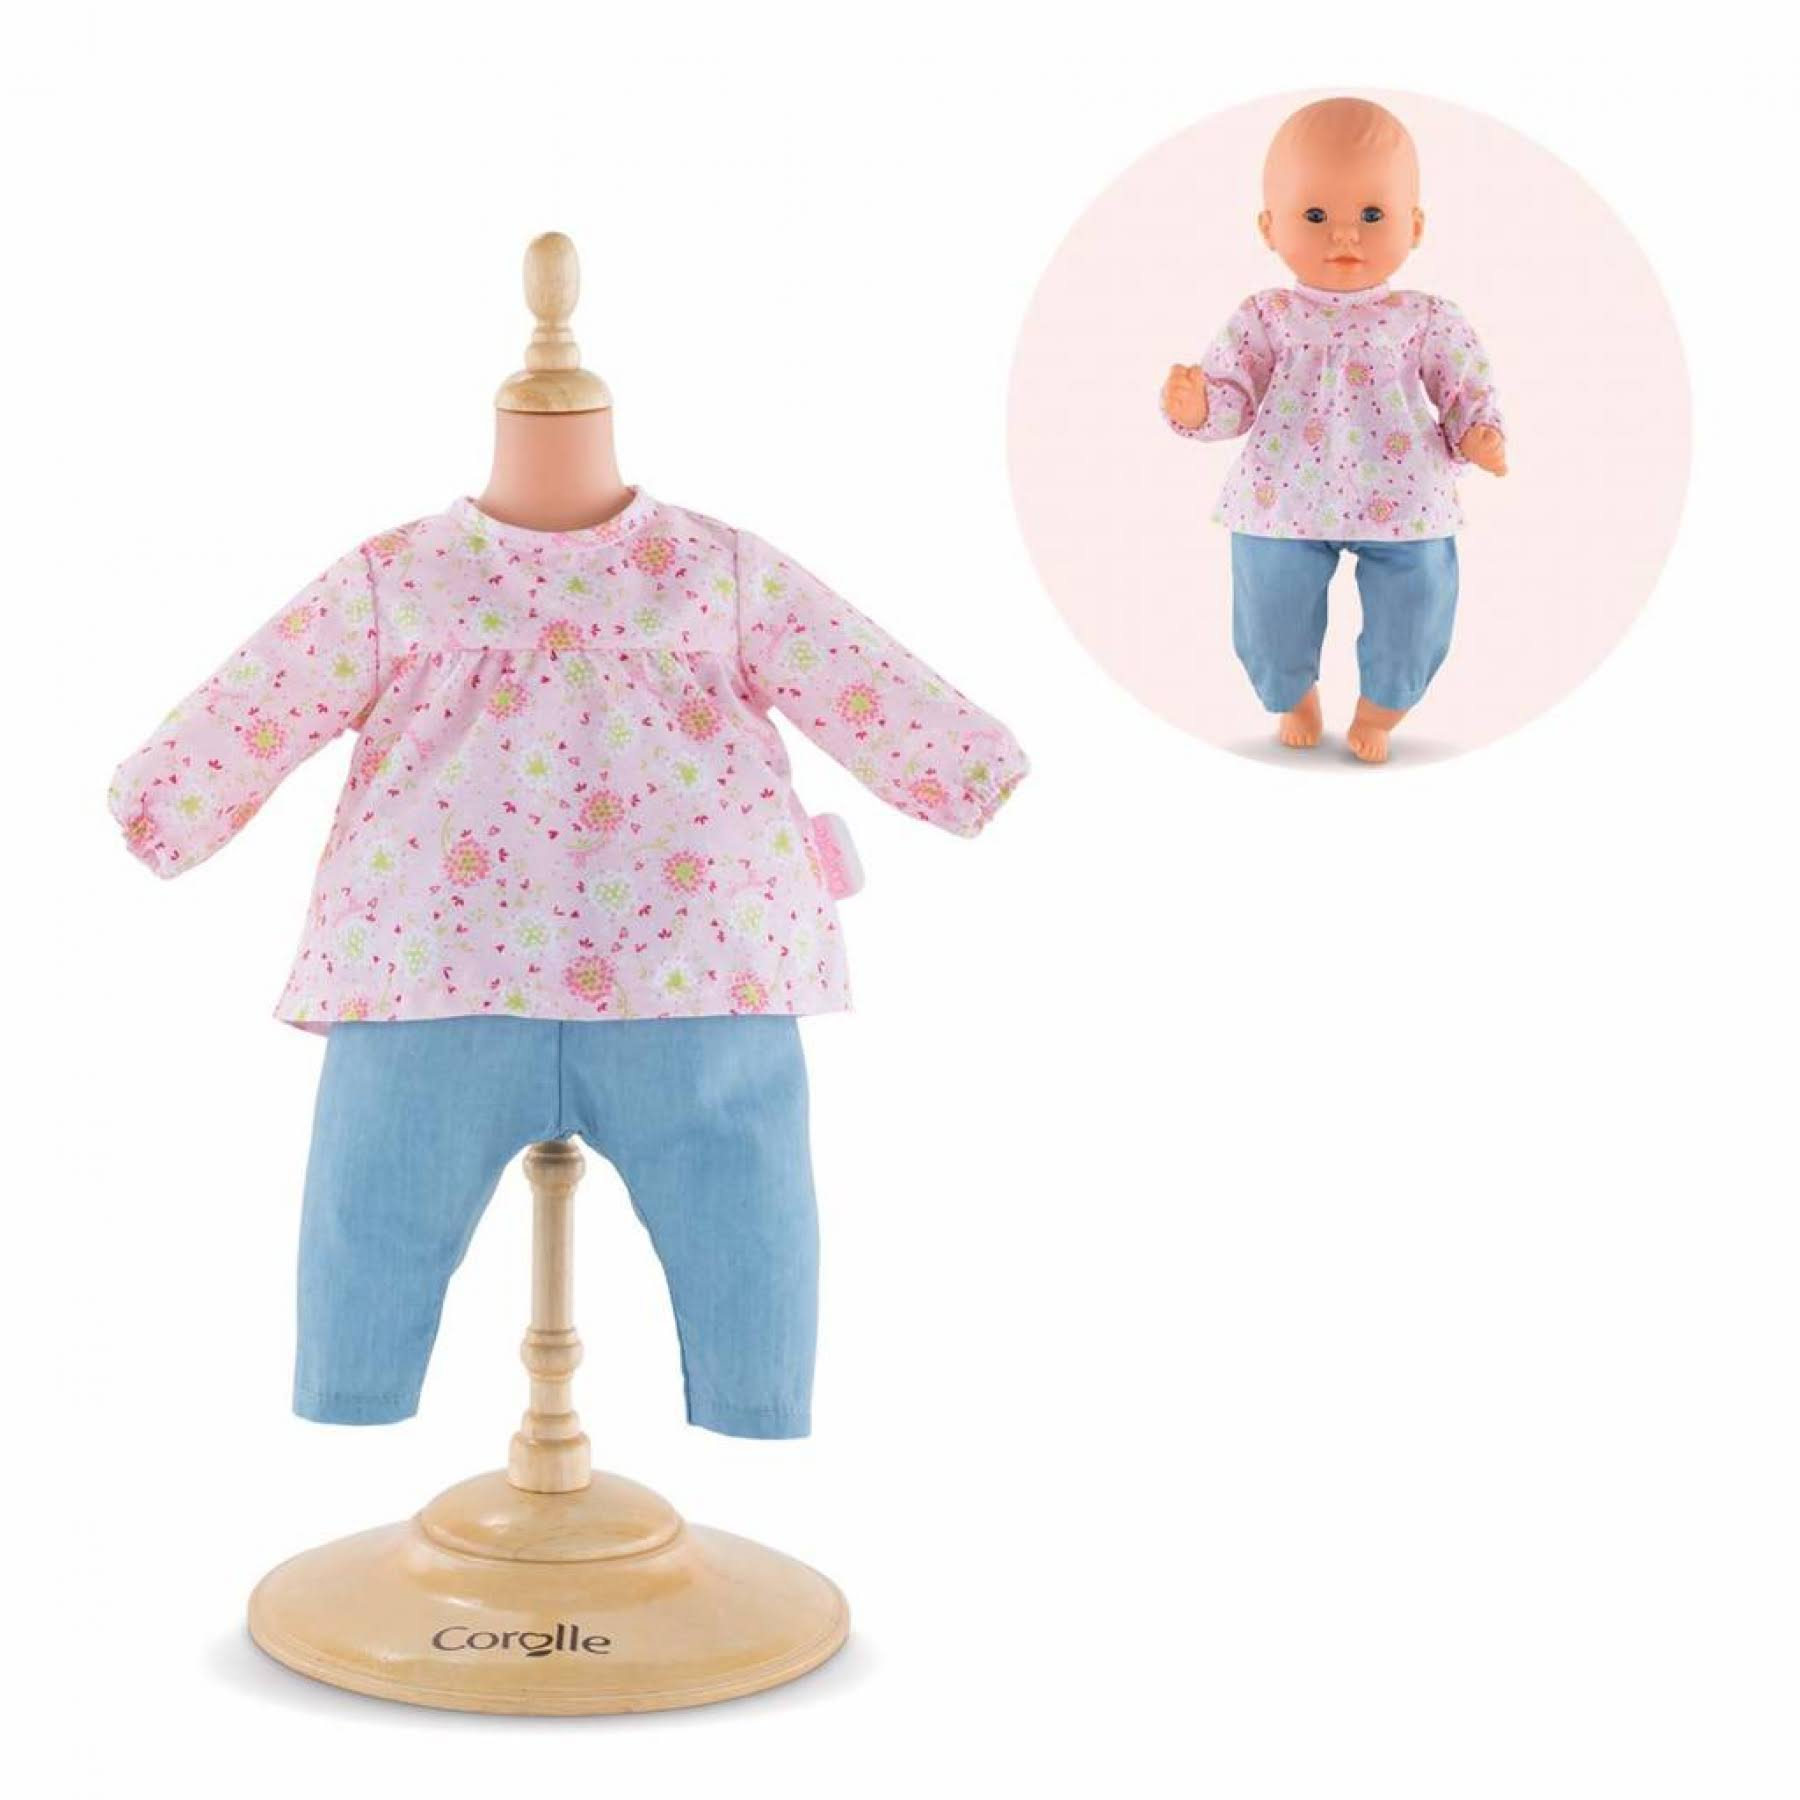 Corolle Mon Premier Poupon Baby Doll Blouse and Pants Accessory Toy